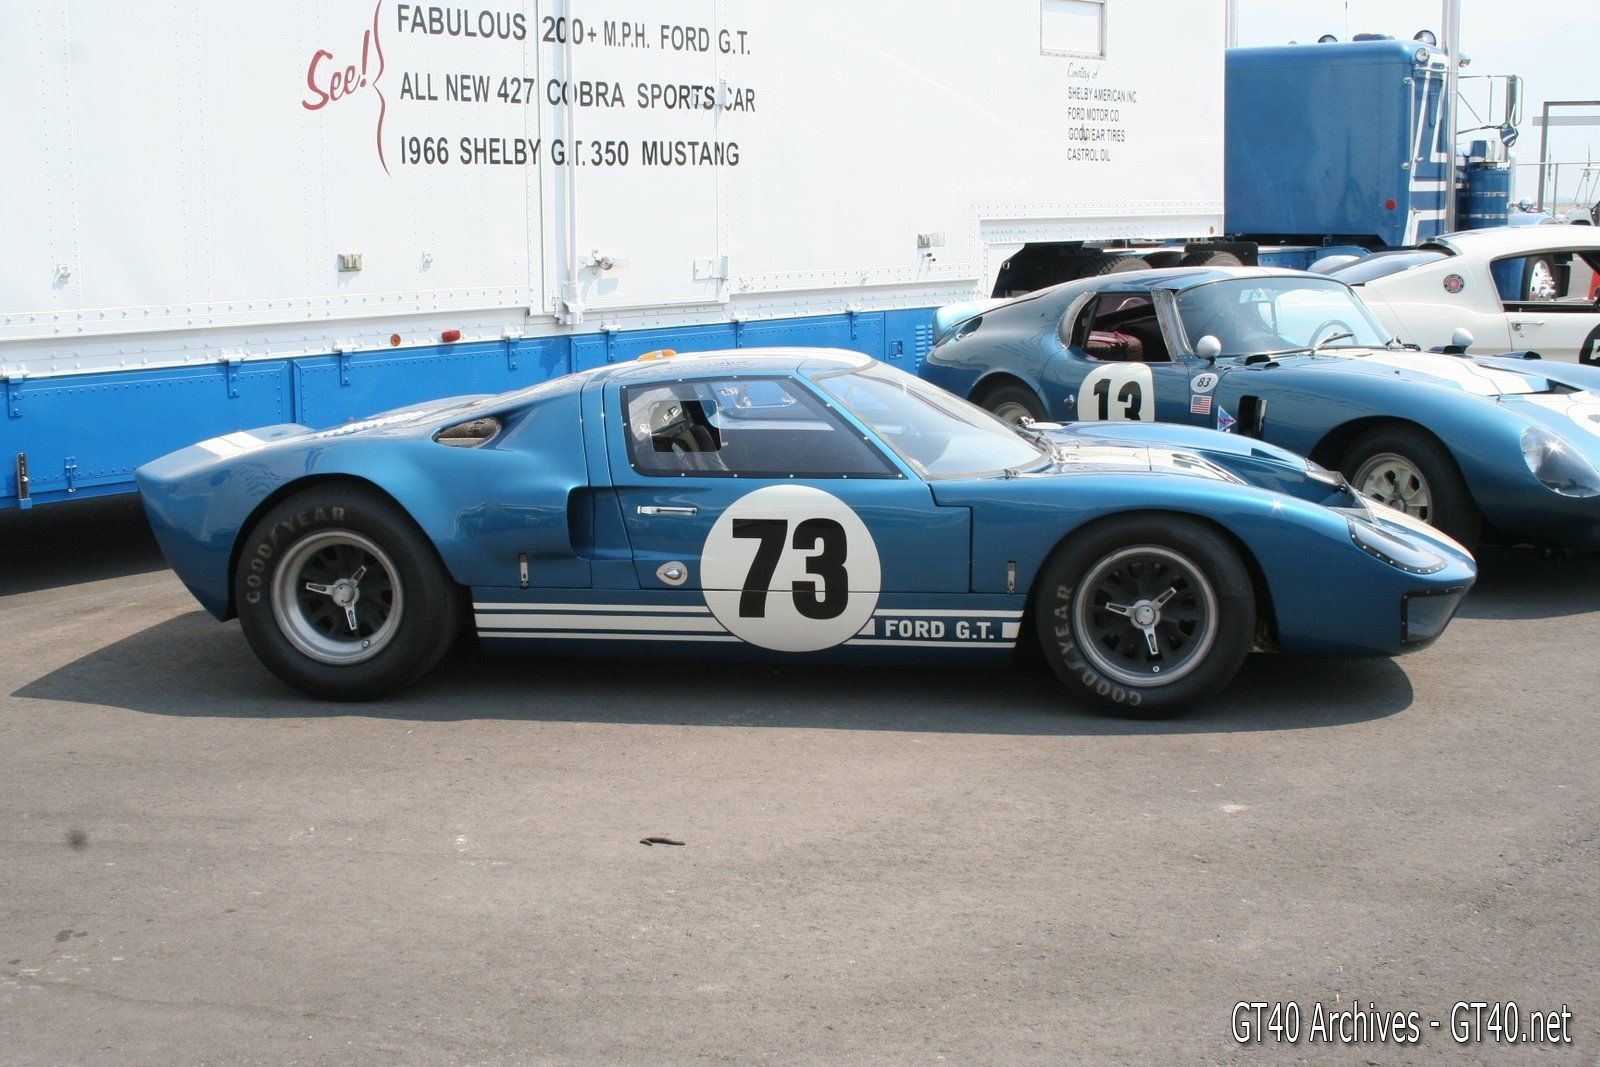 Ford Gt40 Chassis Number Gt 103 1 Gt40 Archives Ford Racing